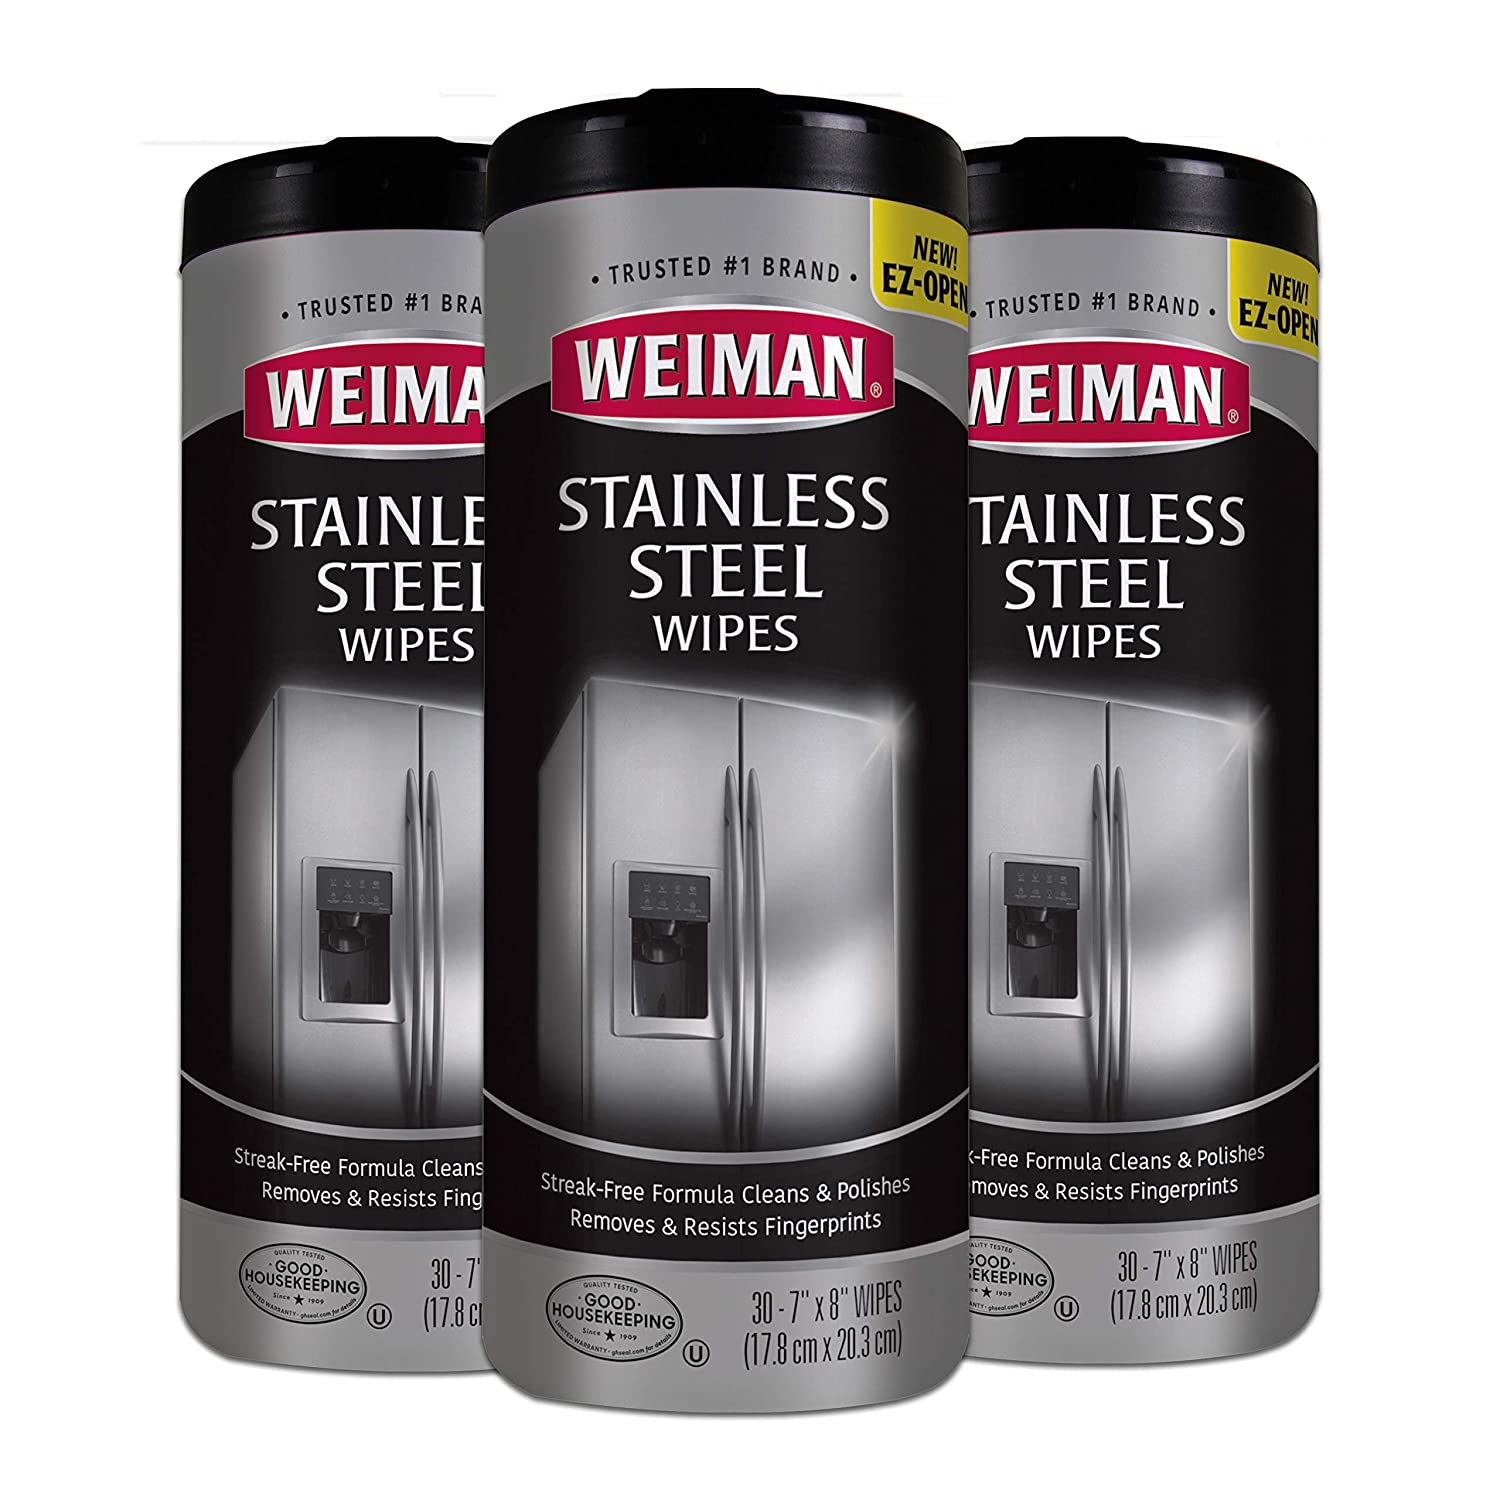 Weiman Stainless Steel Cleaner Wipes [3 Pack] Removes Fingerprints, Residue, Water Marks and Grease from Appliances - Works Great on Refrigerators, Dishwashers, Ovens, and Grills